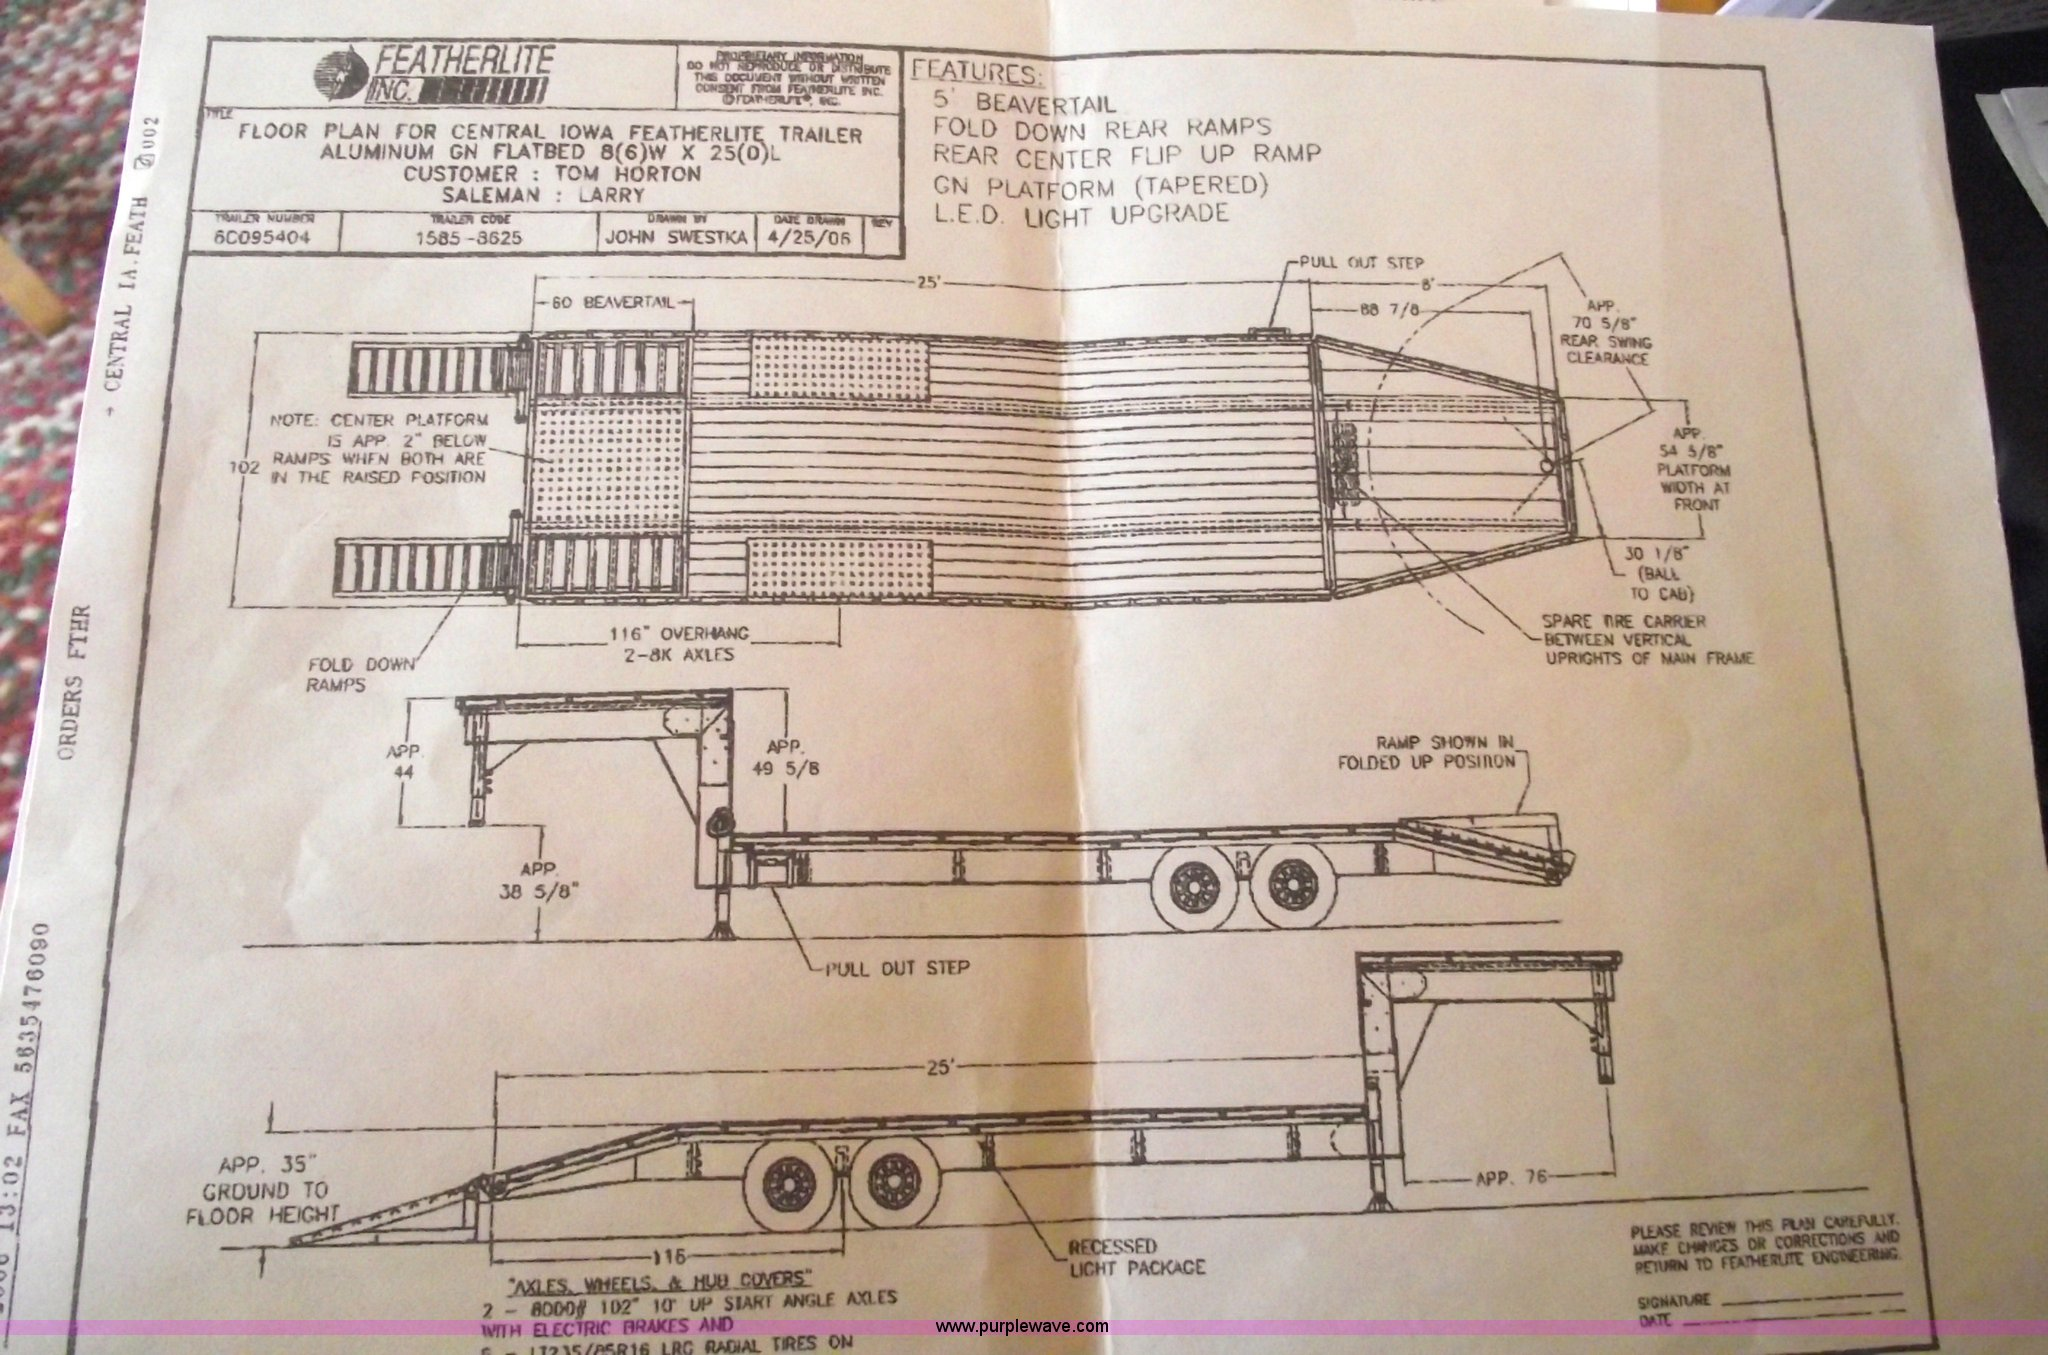 2006 Featherlite 1585 All Aluminum Goose Neck Trailer Item Wiring Diagram For Gooseneck Full Size In New Window